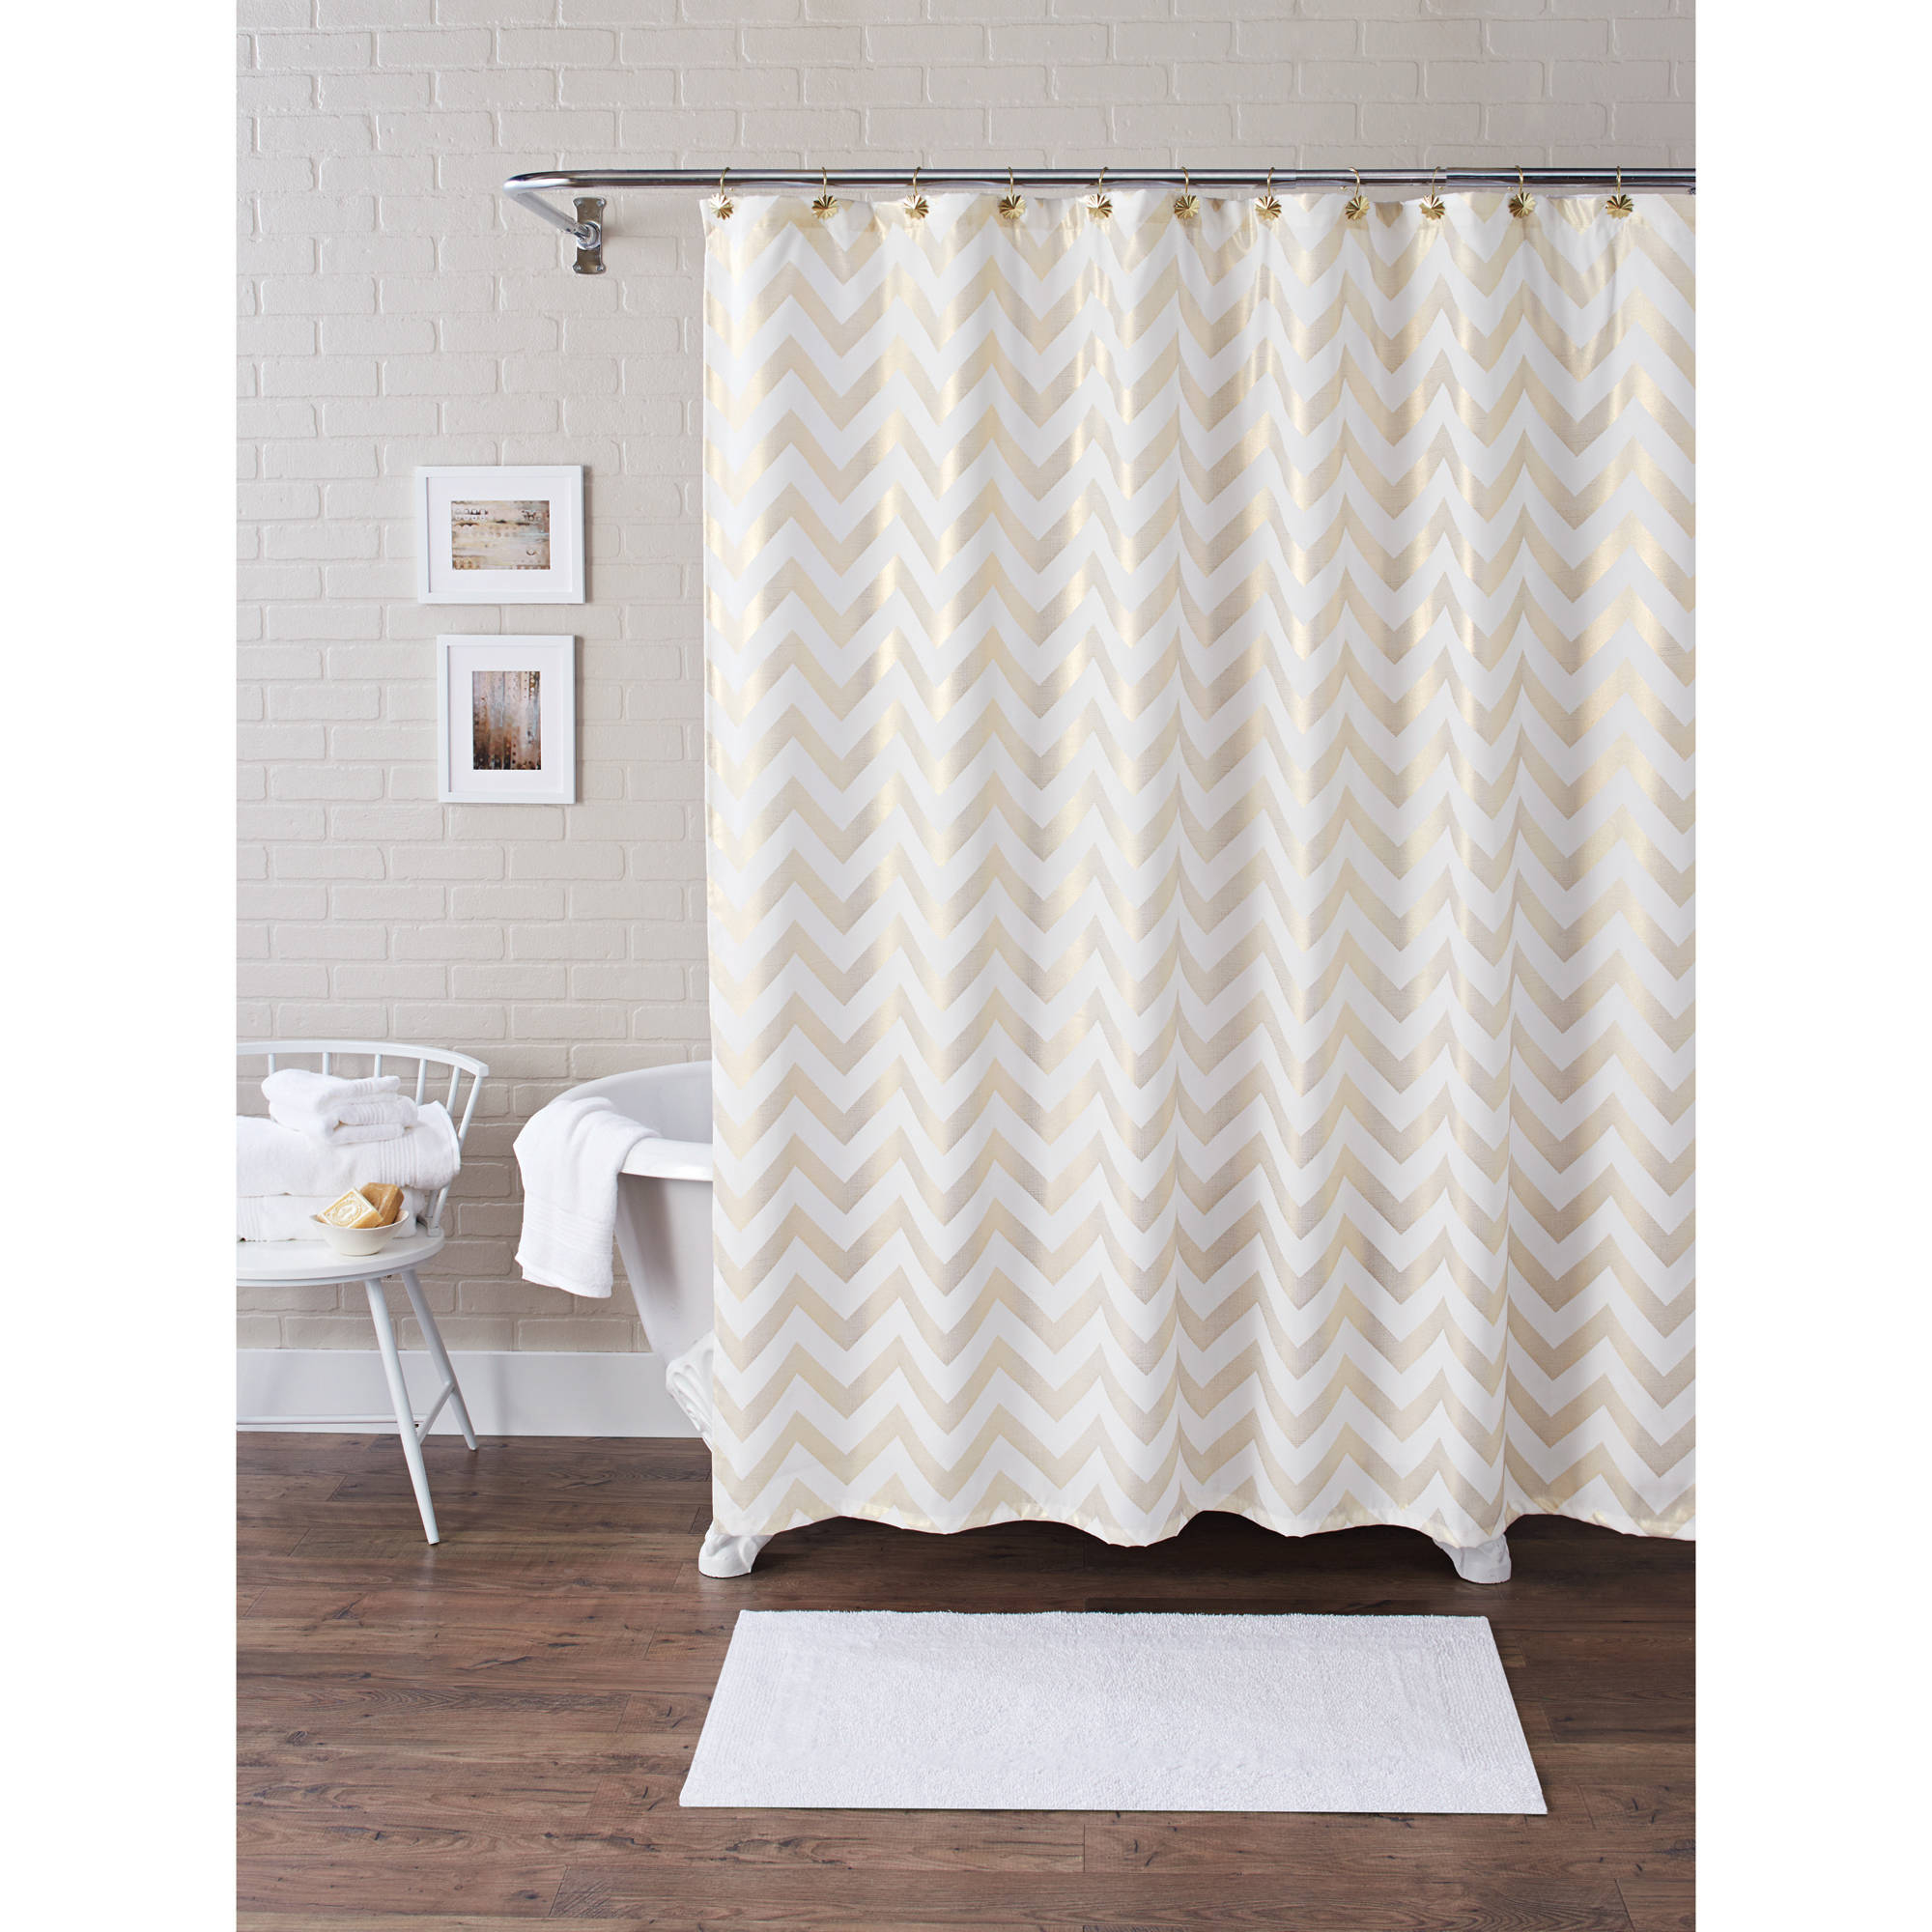 Black White Chevron Shower Curtain. Better Homes And Gardens Metallic Chevron Fabric 13 Piece Shower intended  for dimensions 2000 X Black Tan Curtain Curtains Ideas